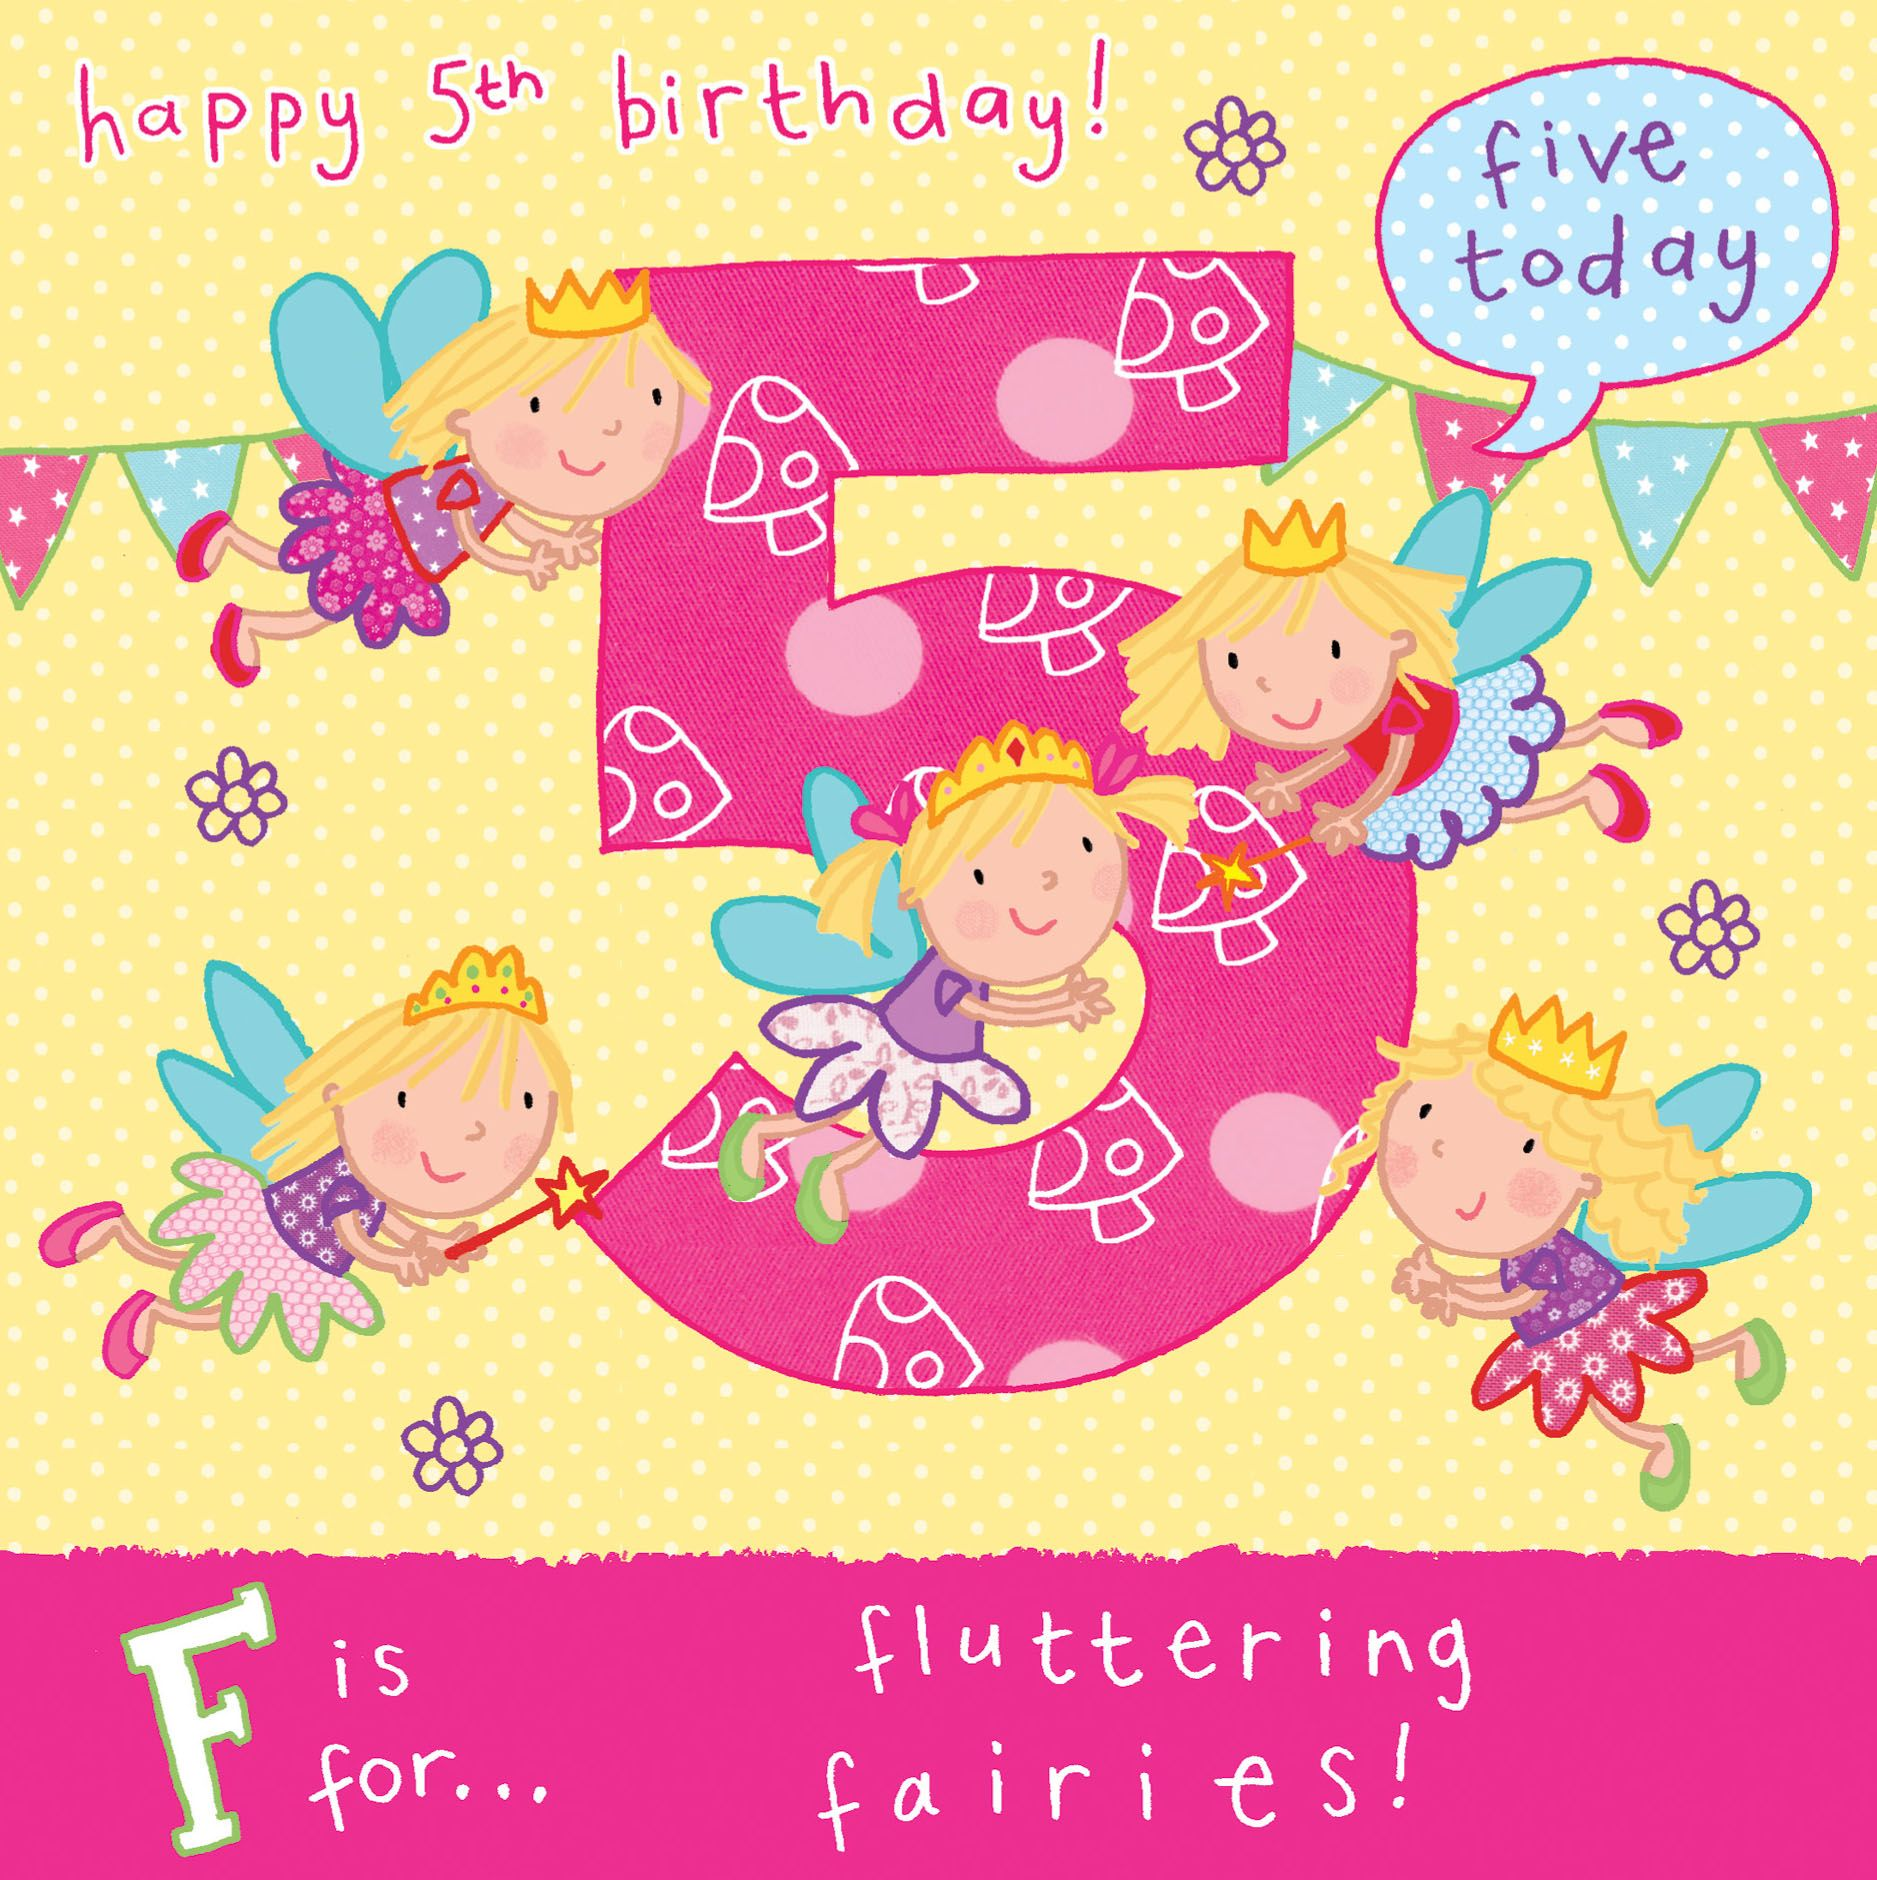 Age 5 Flying Fairies Birthday Card Tw055 4434 P